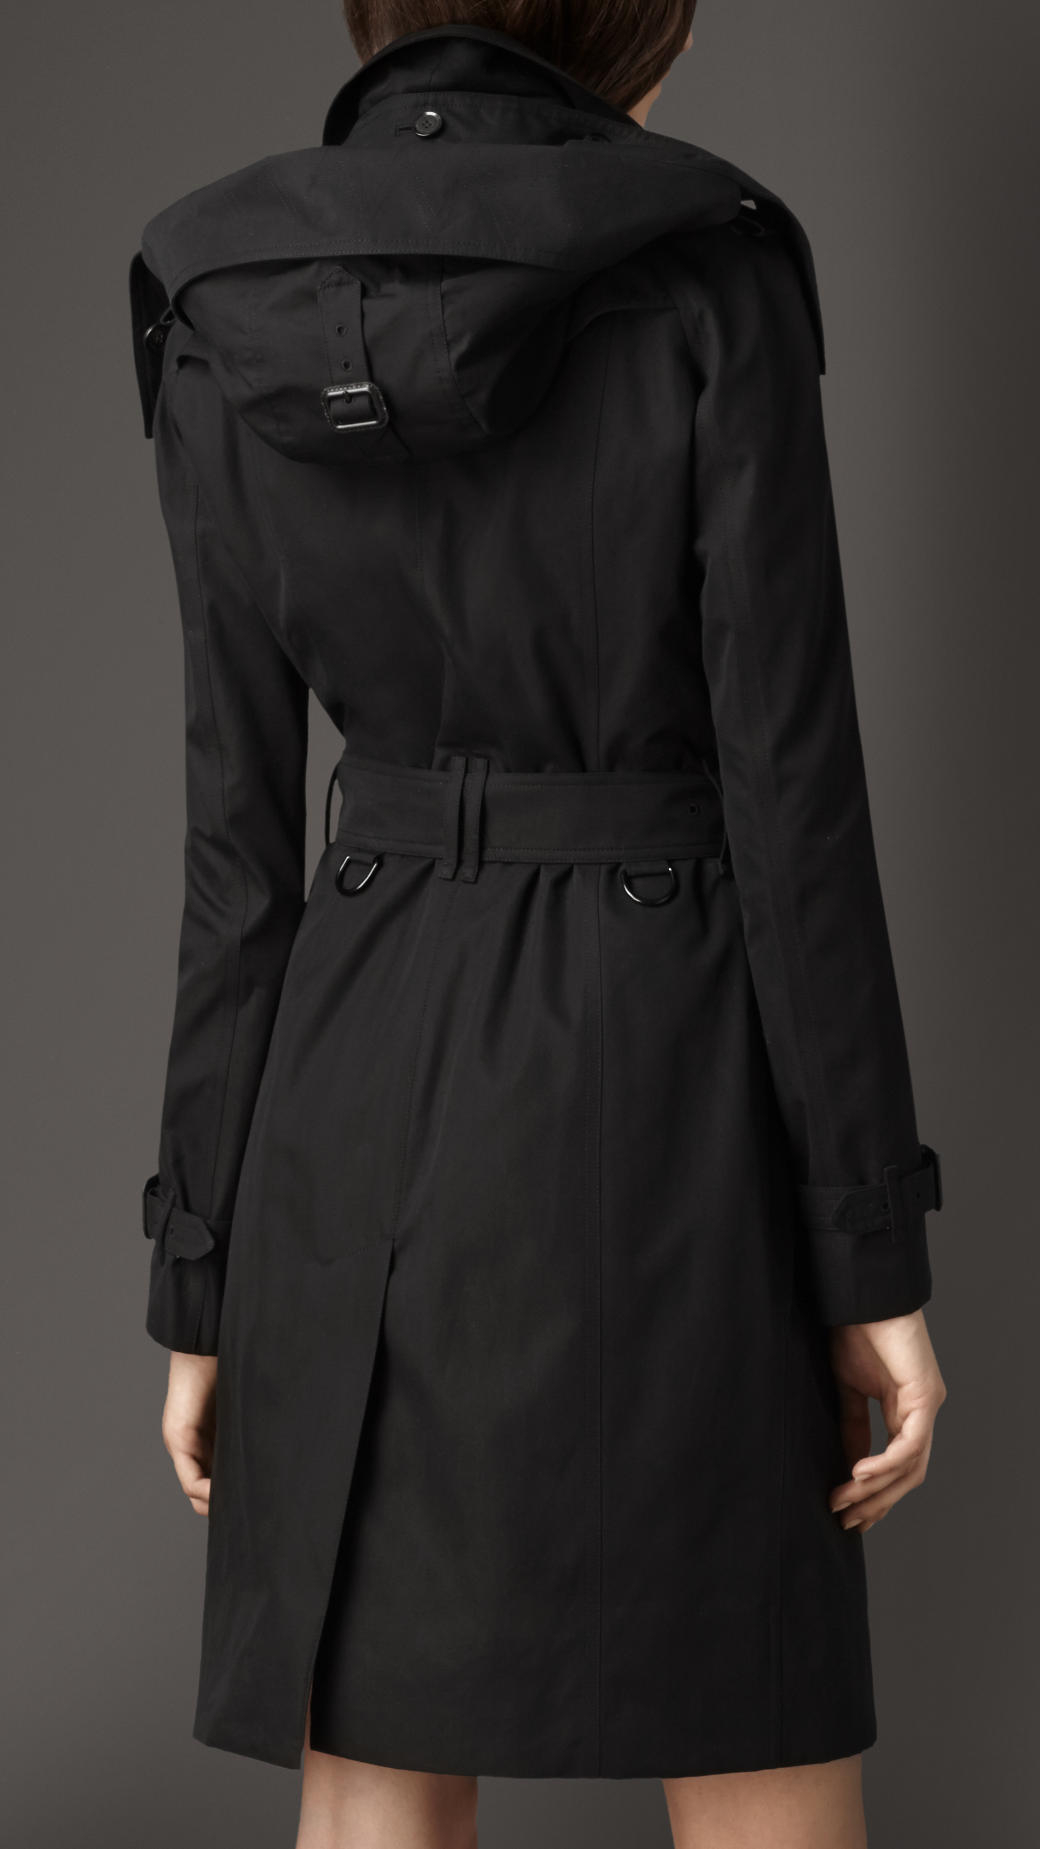 black trench coat with hood - photo #6